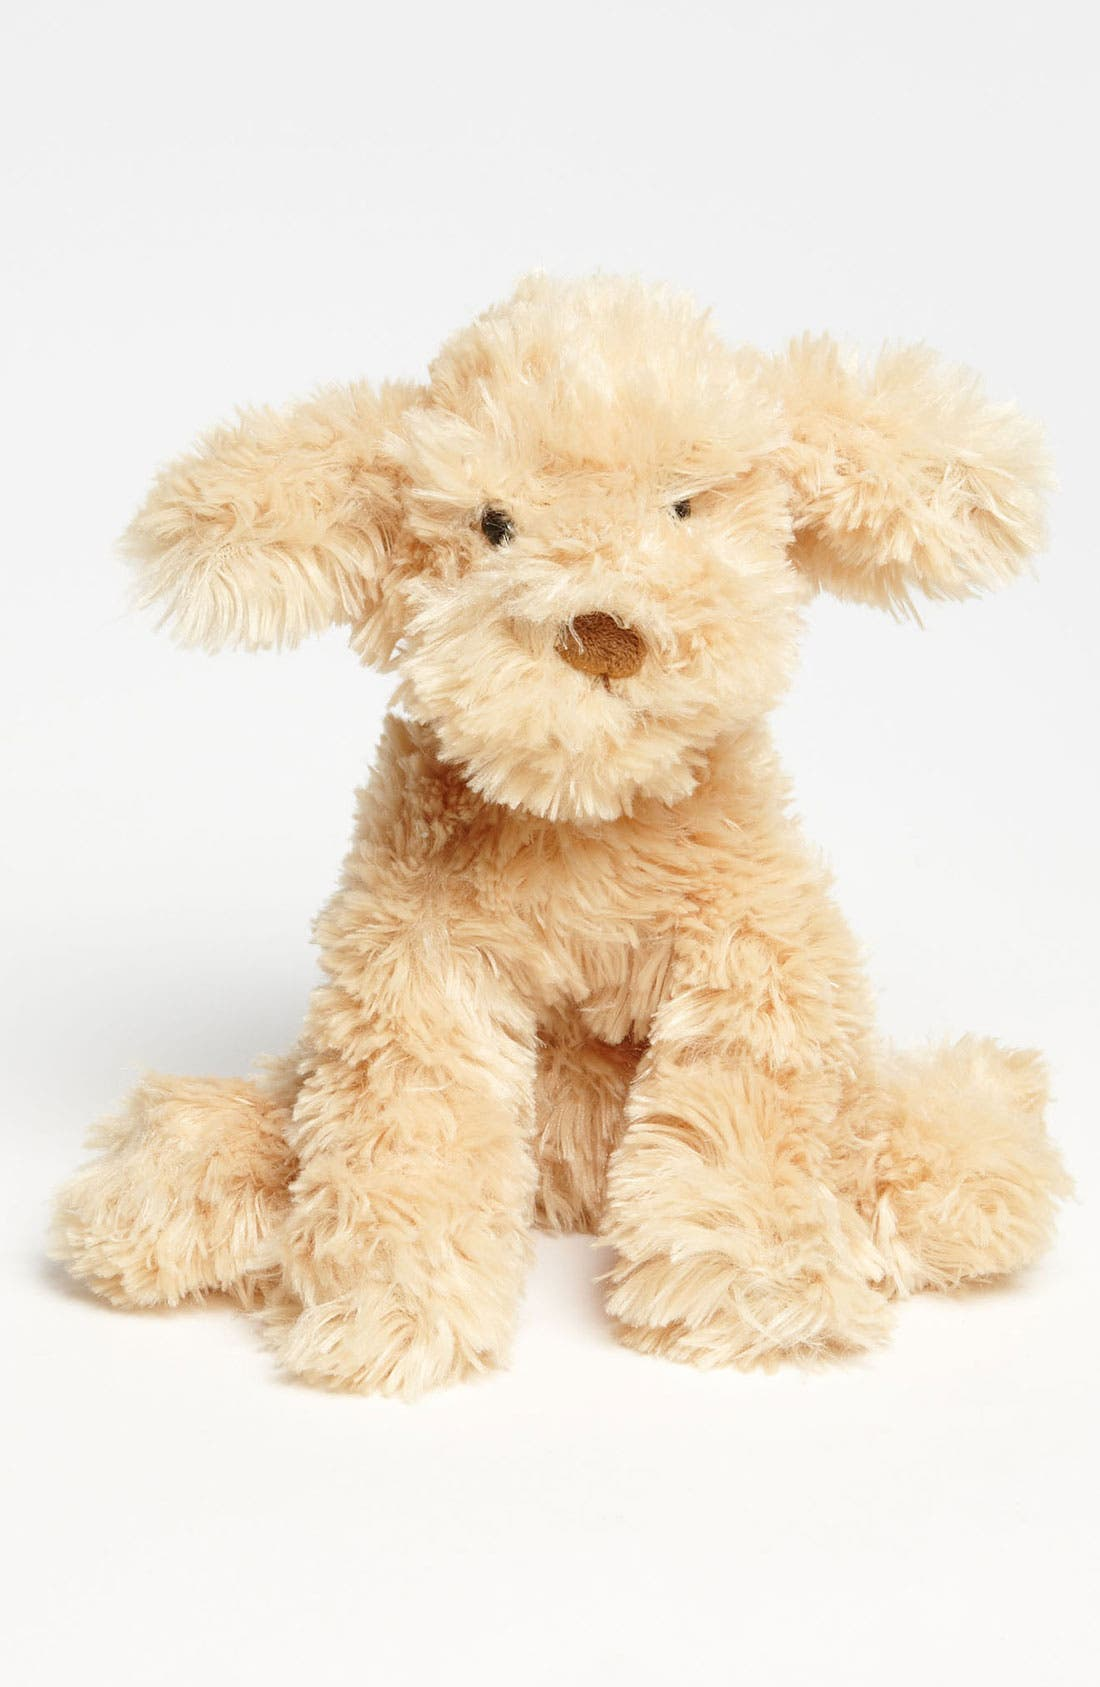 Main Image - Gund 'Nayla' Stuffed Animal